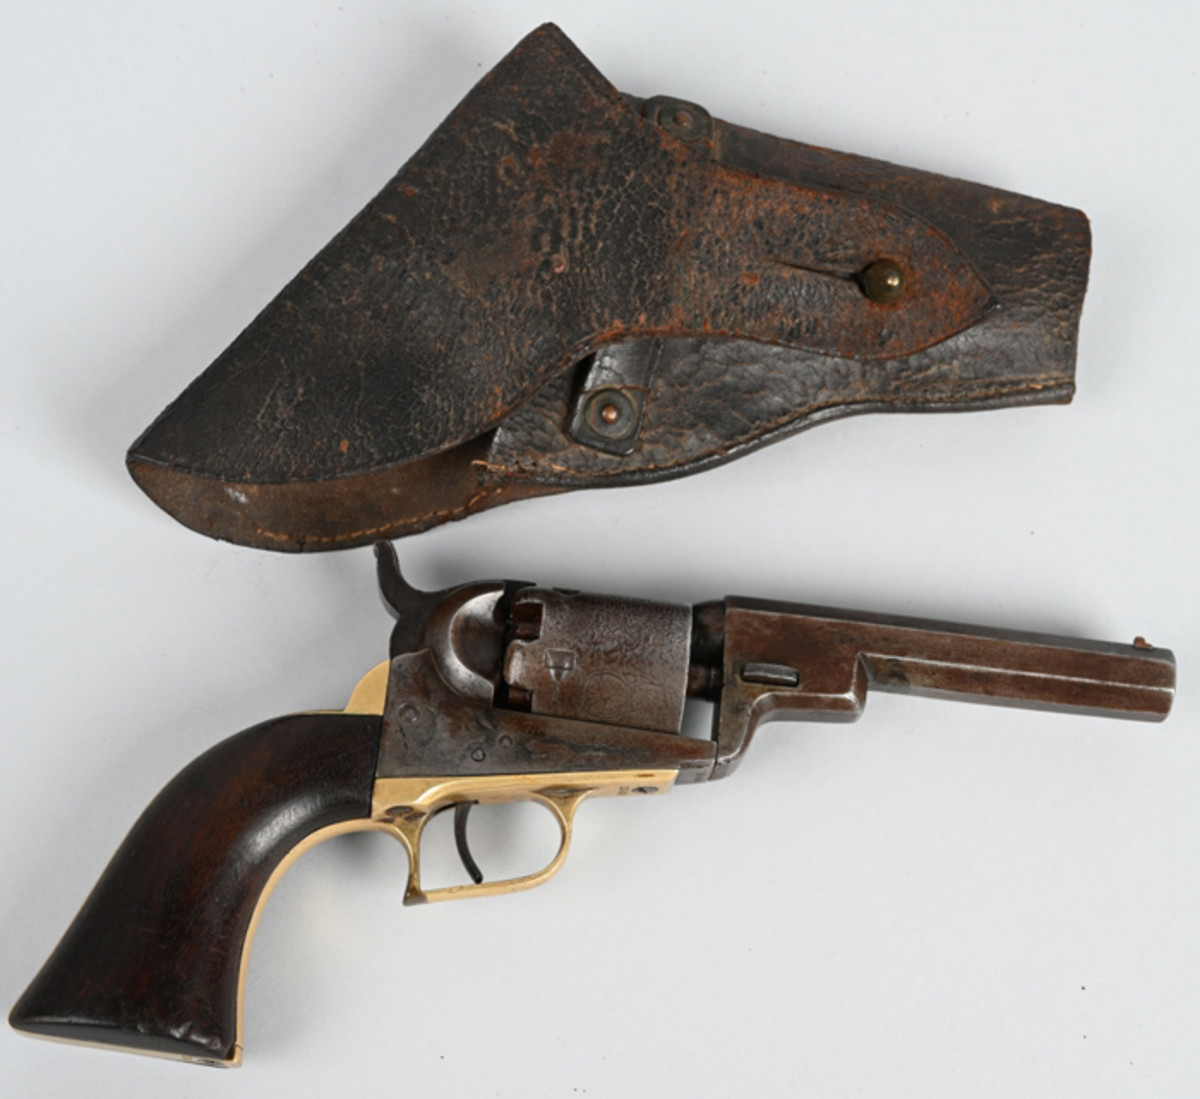 Rare 4-inch .31-caliber Wells Fargo Colt percussion revolver, made in 1857, cylinder scene of stagecoach.